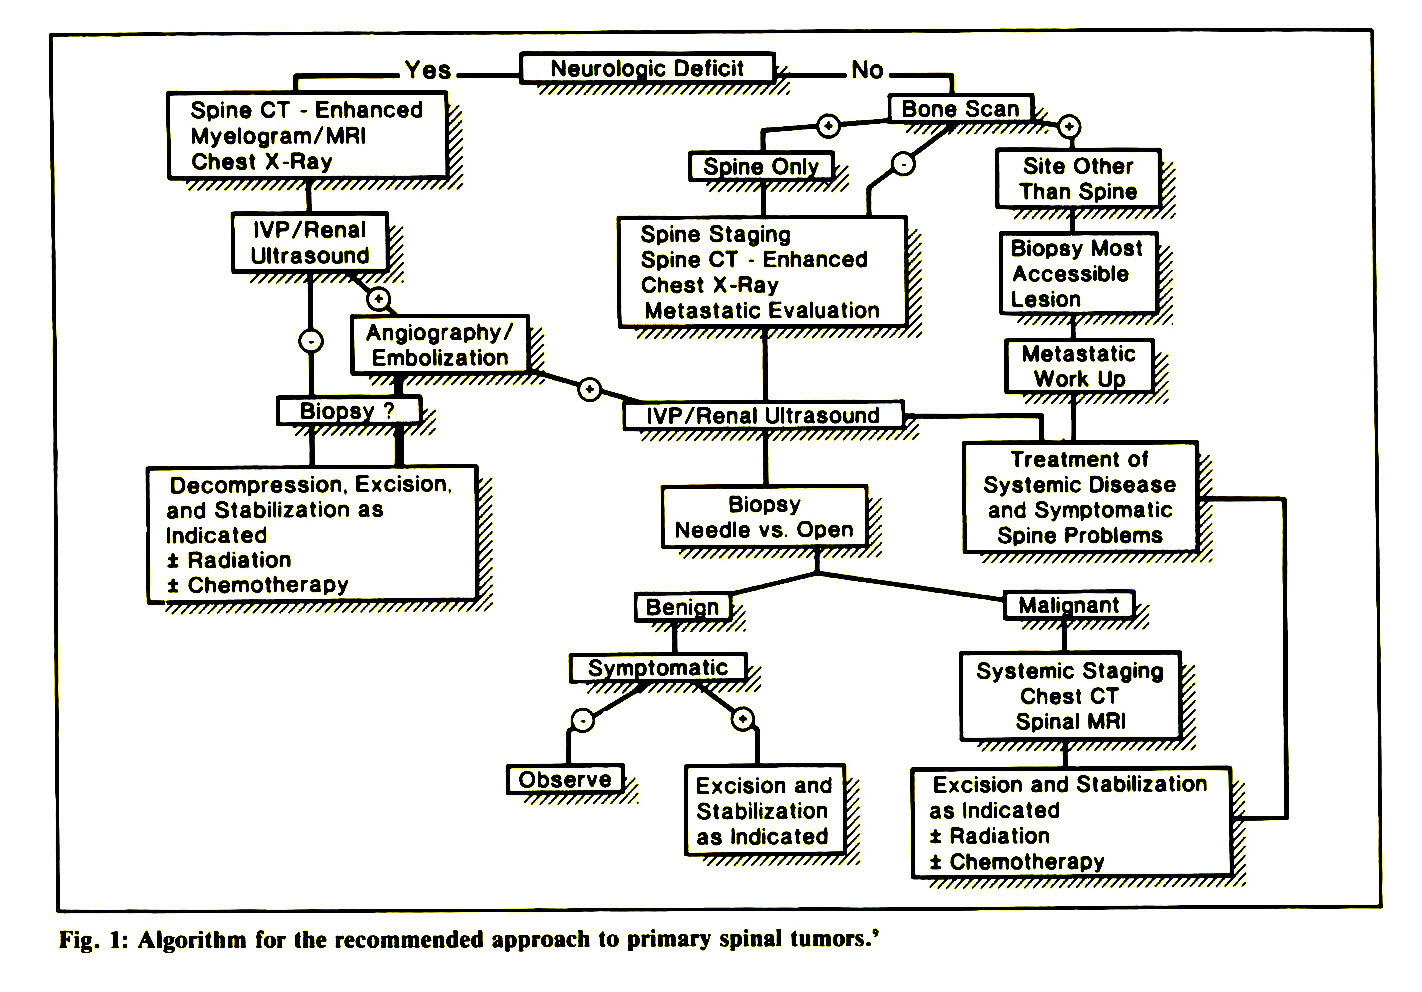 Fig. I: Algorithm for the recommended approach to primary spinal tumors.